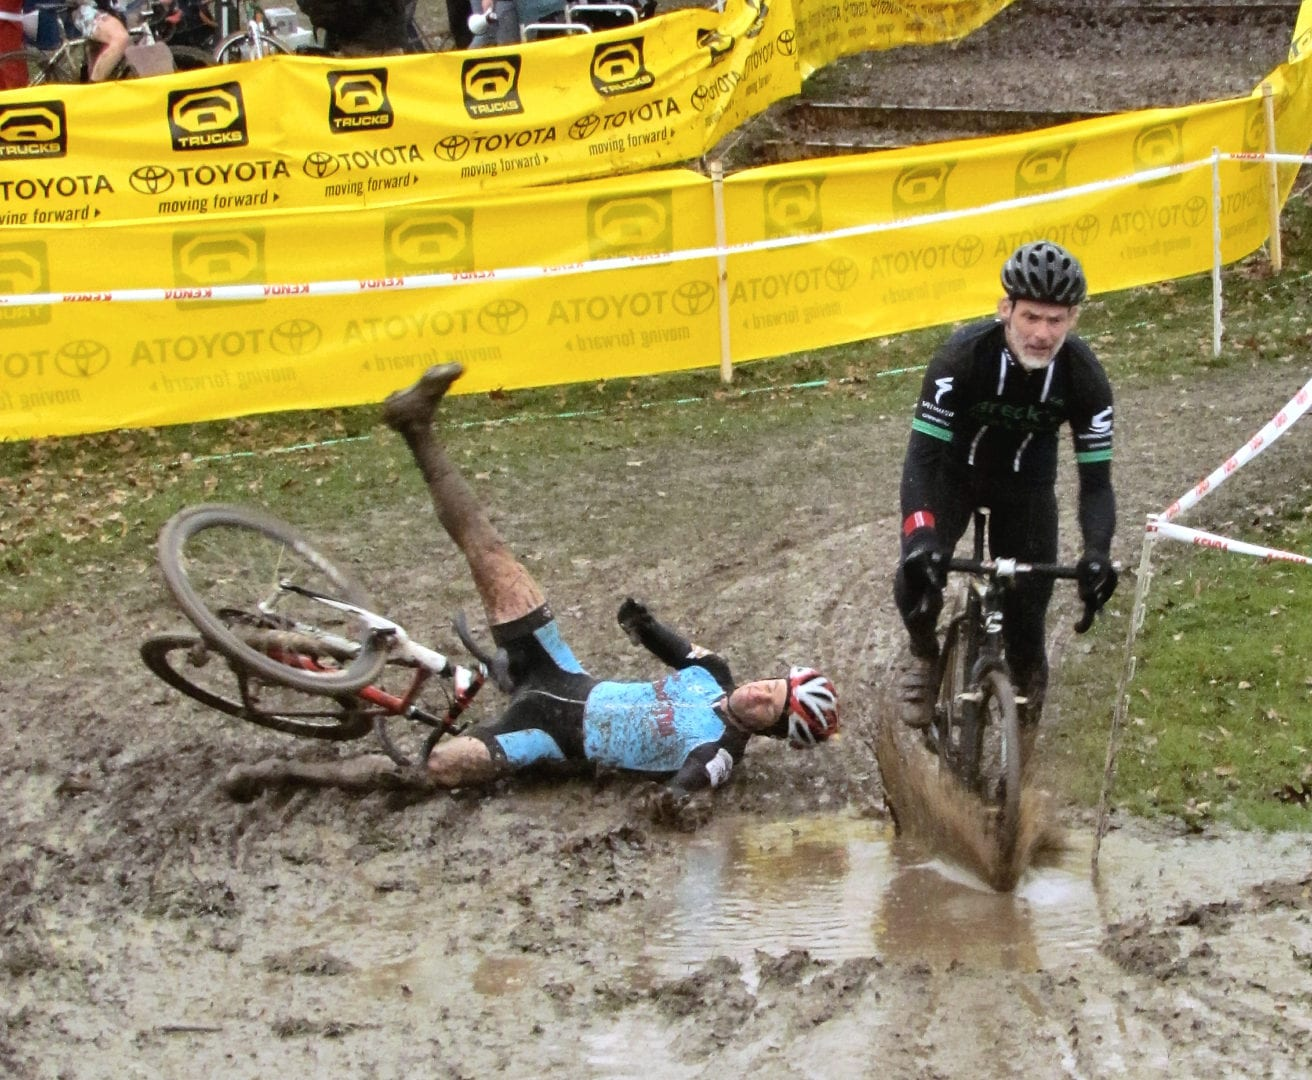 A cyclist falling on the mud